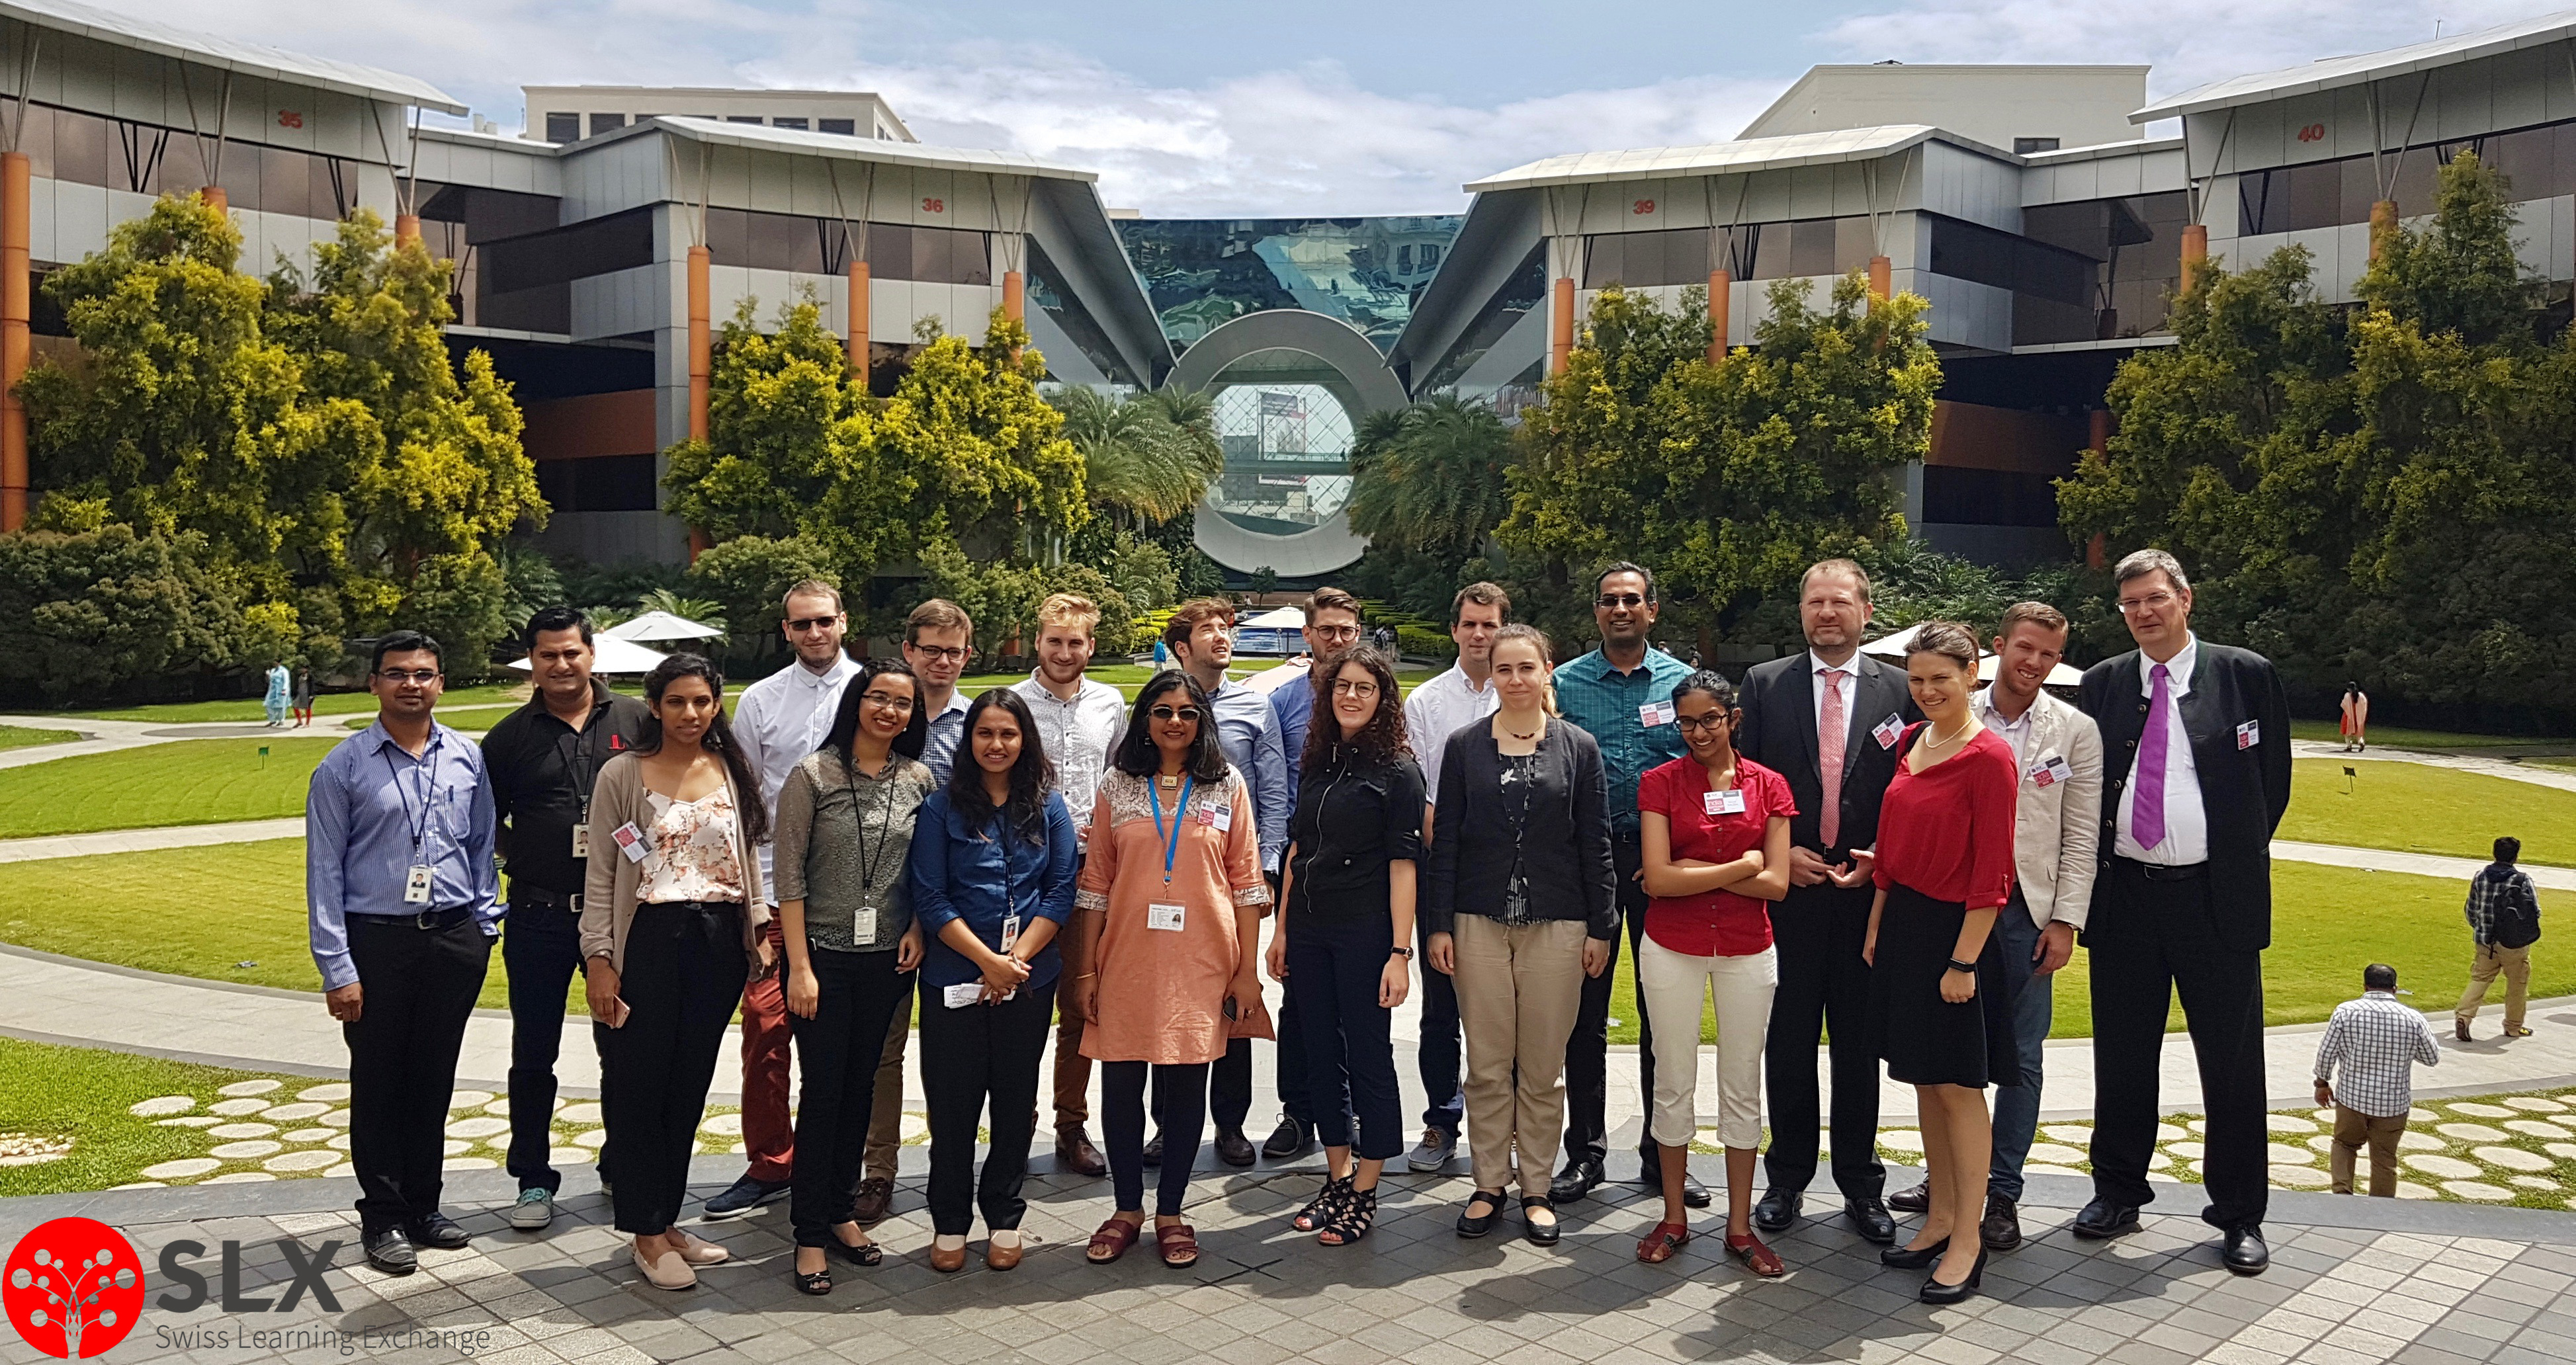 Tech India Digital India Offices Bangalore Swiss Learning Exchange Immersion Study Trip